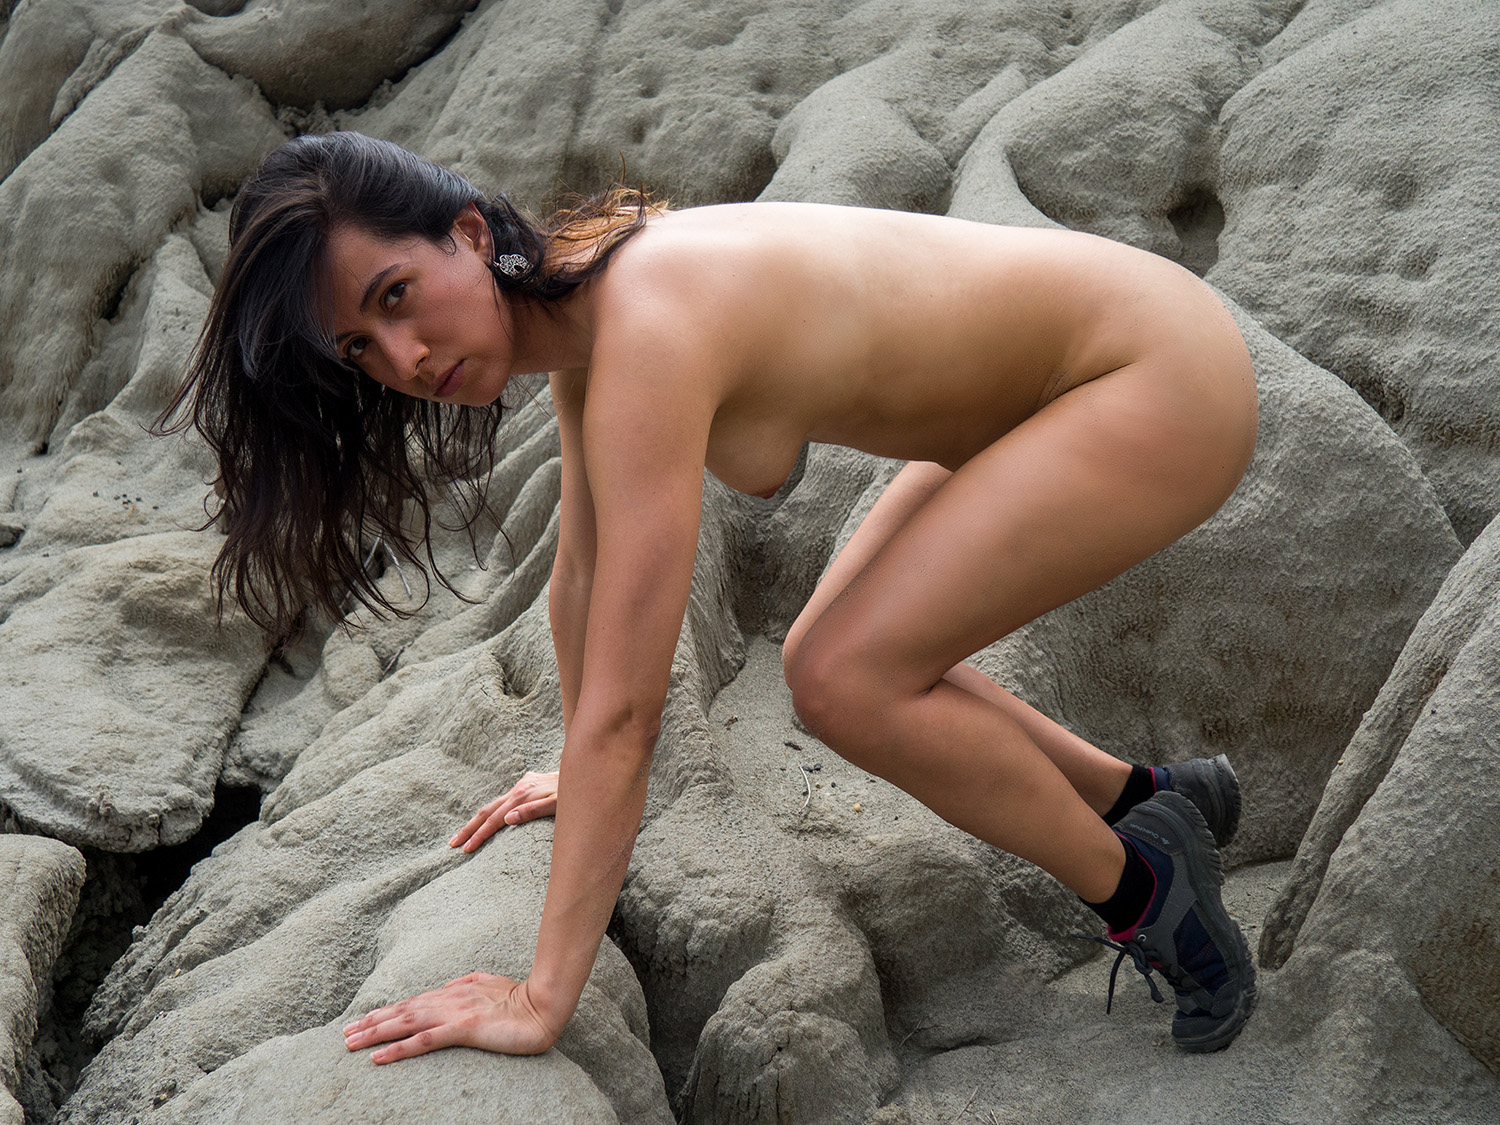 Nude Showcase – A Nude Trek in the Desert with Andrea